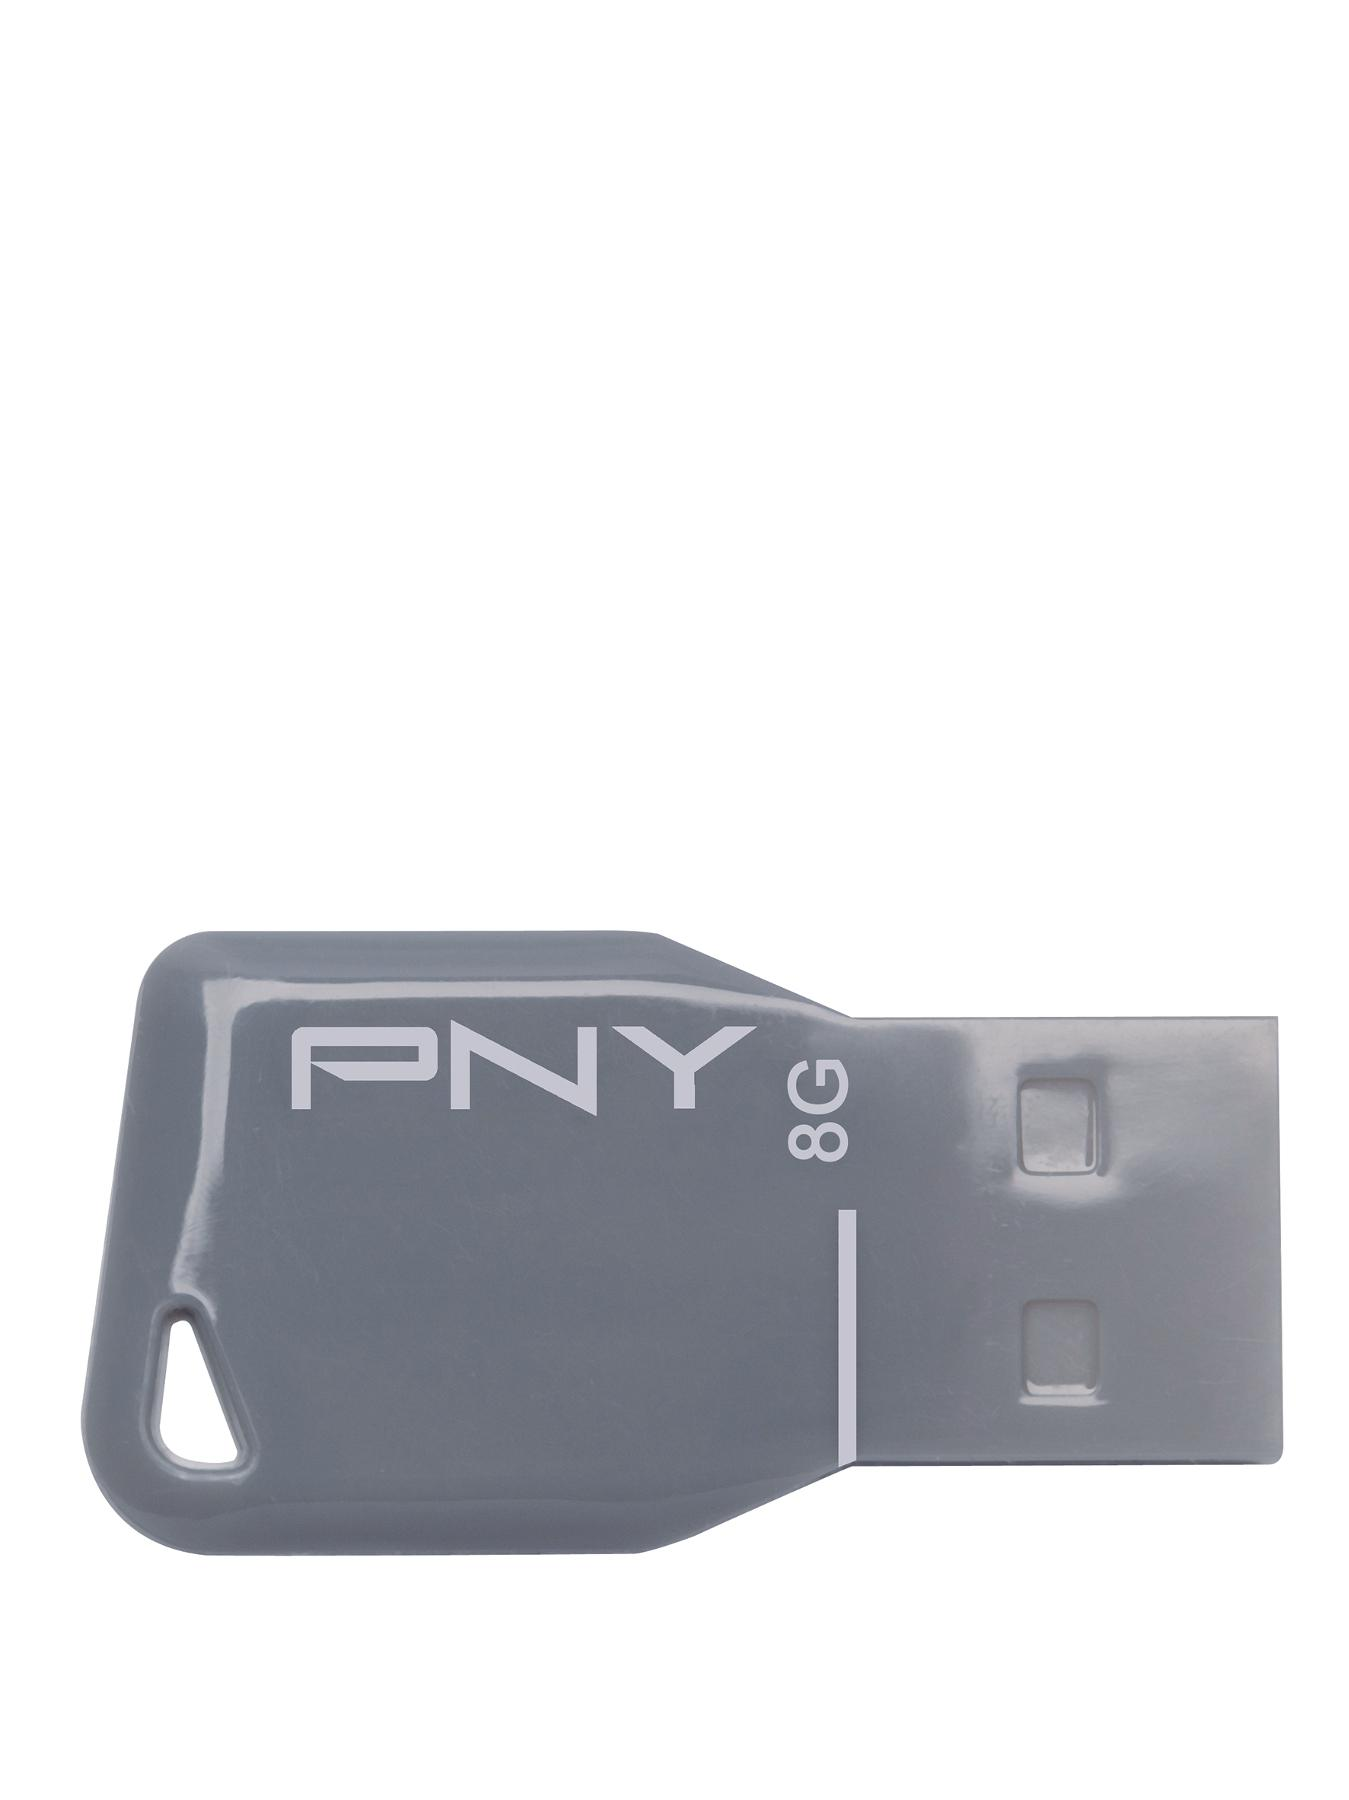 8Gb Key Attache USB - Grey, Grey